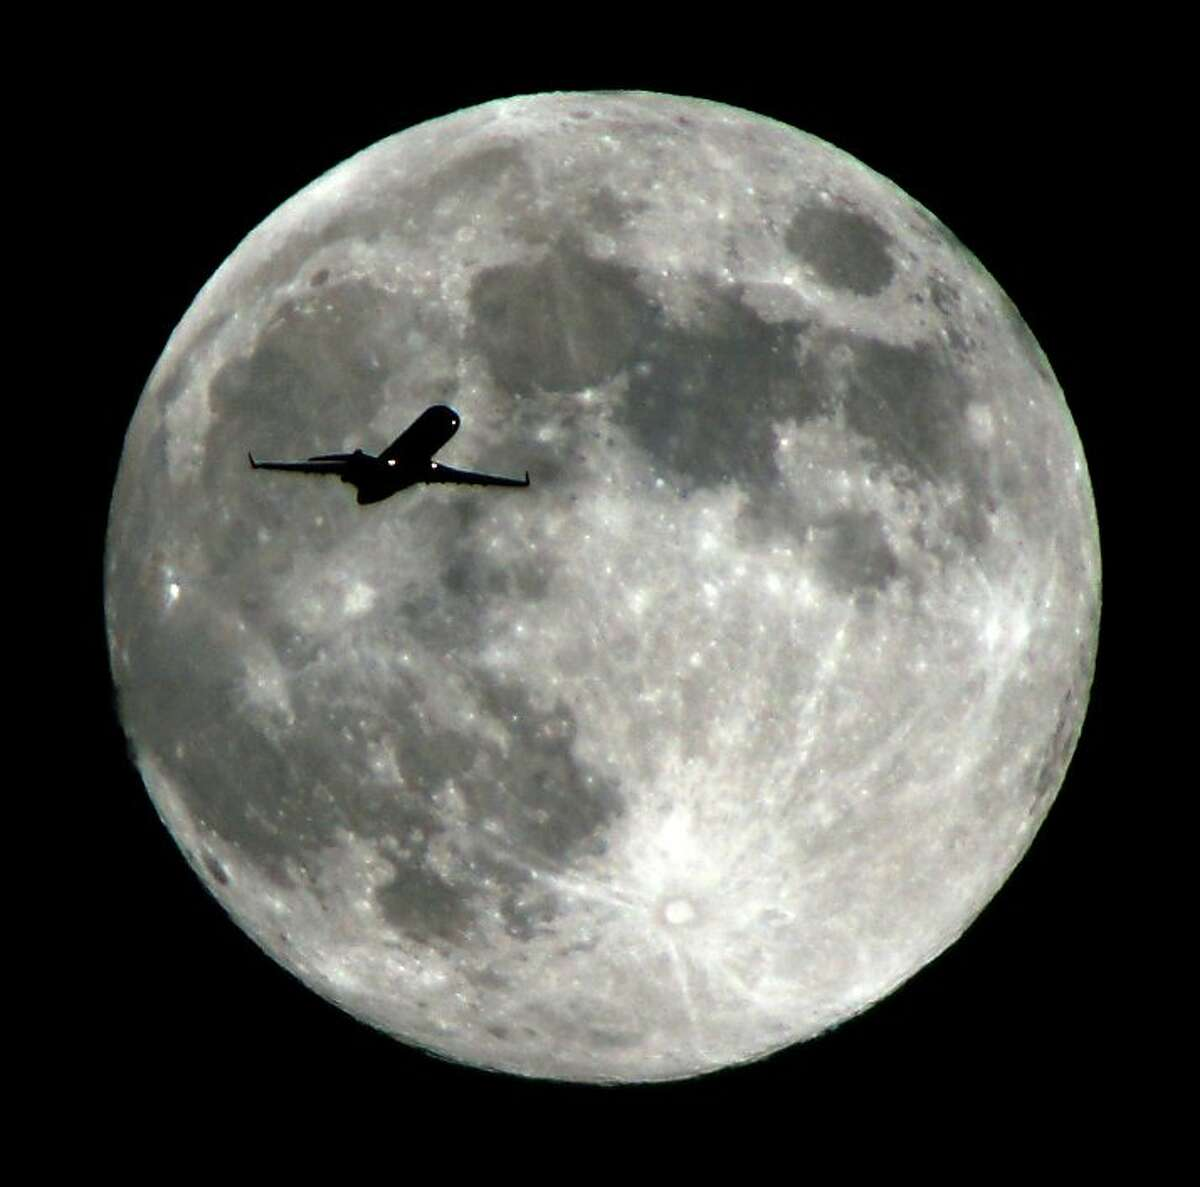 Moonshot: A jetliner approaches to LAX.